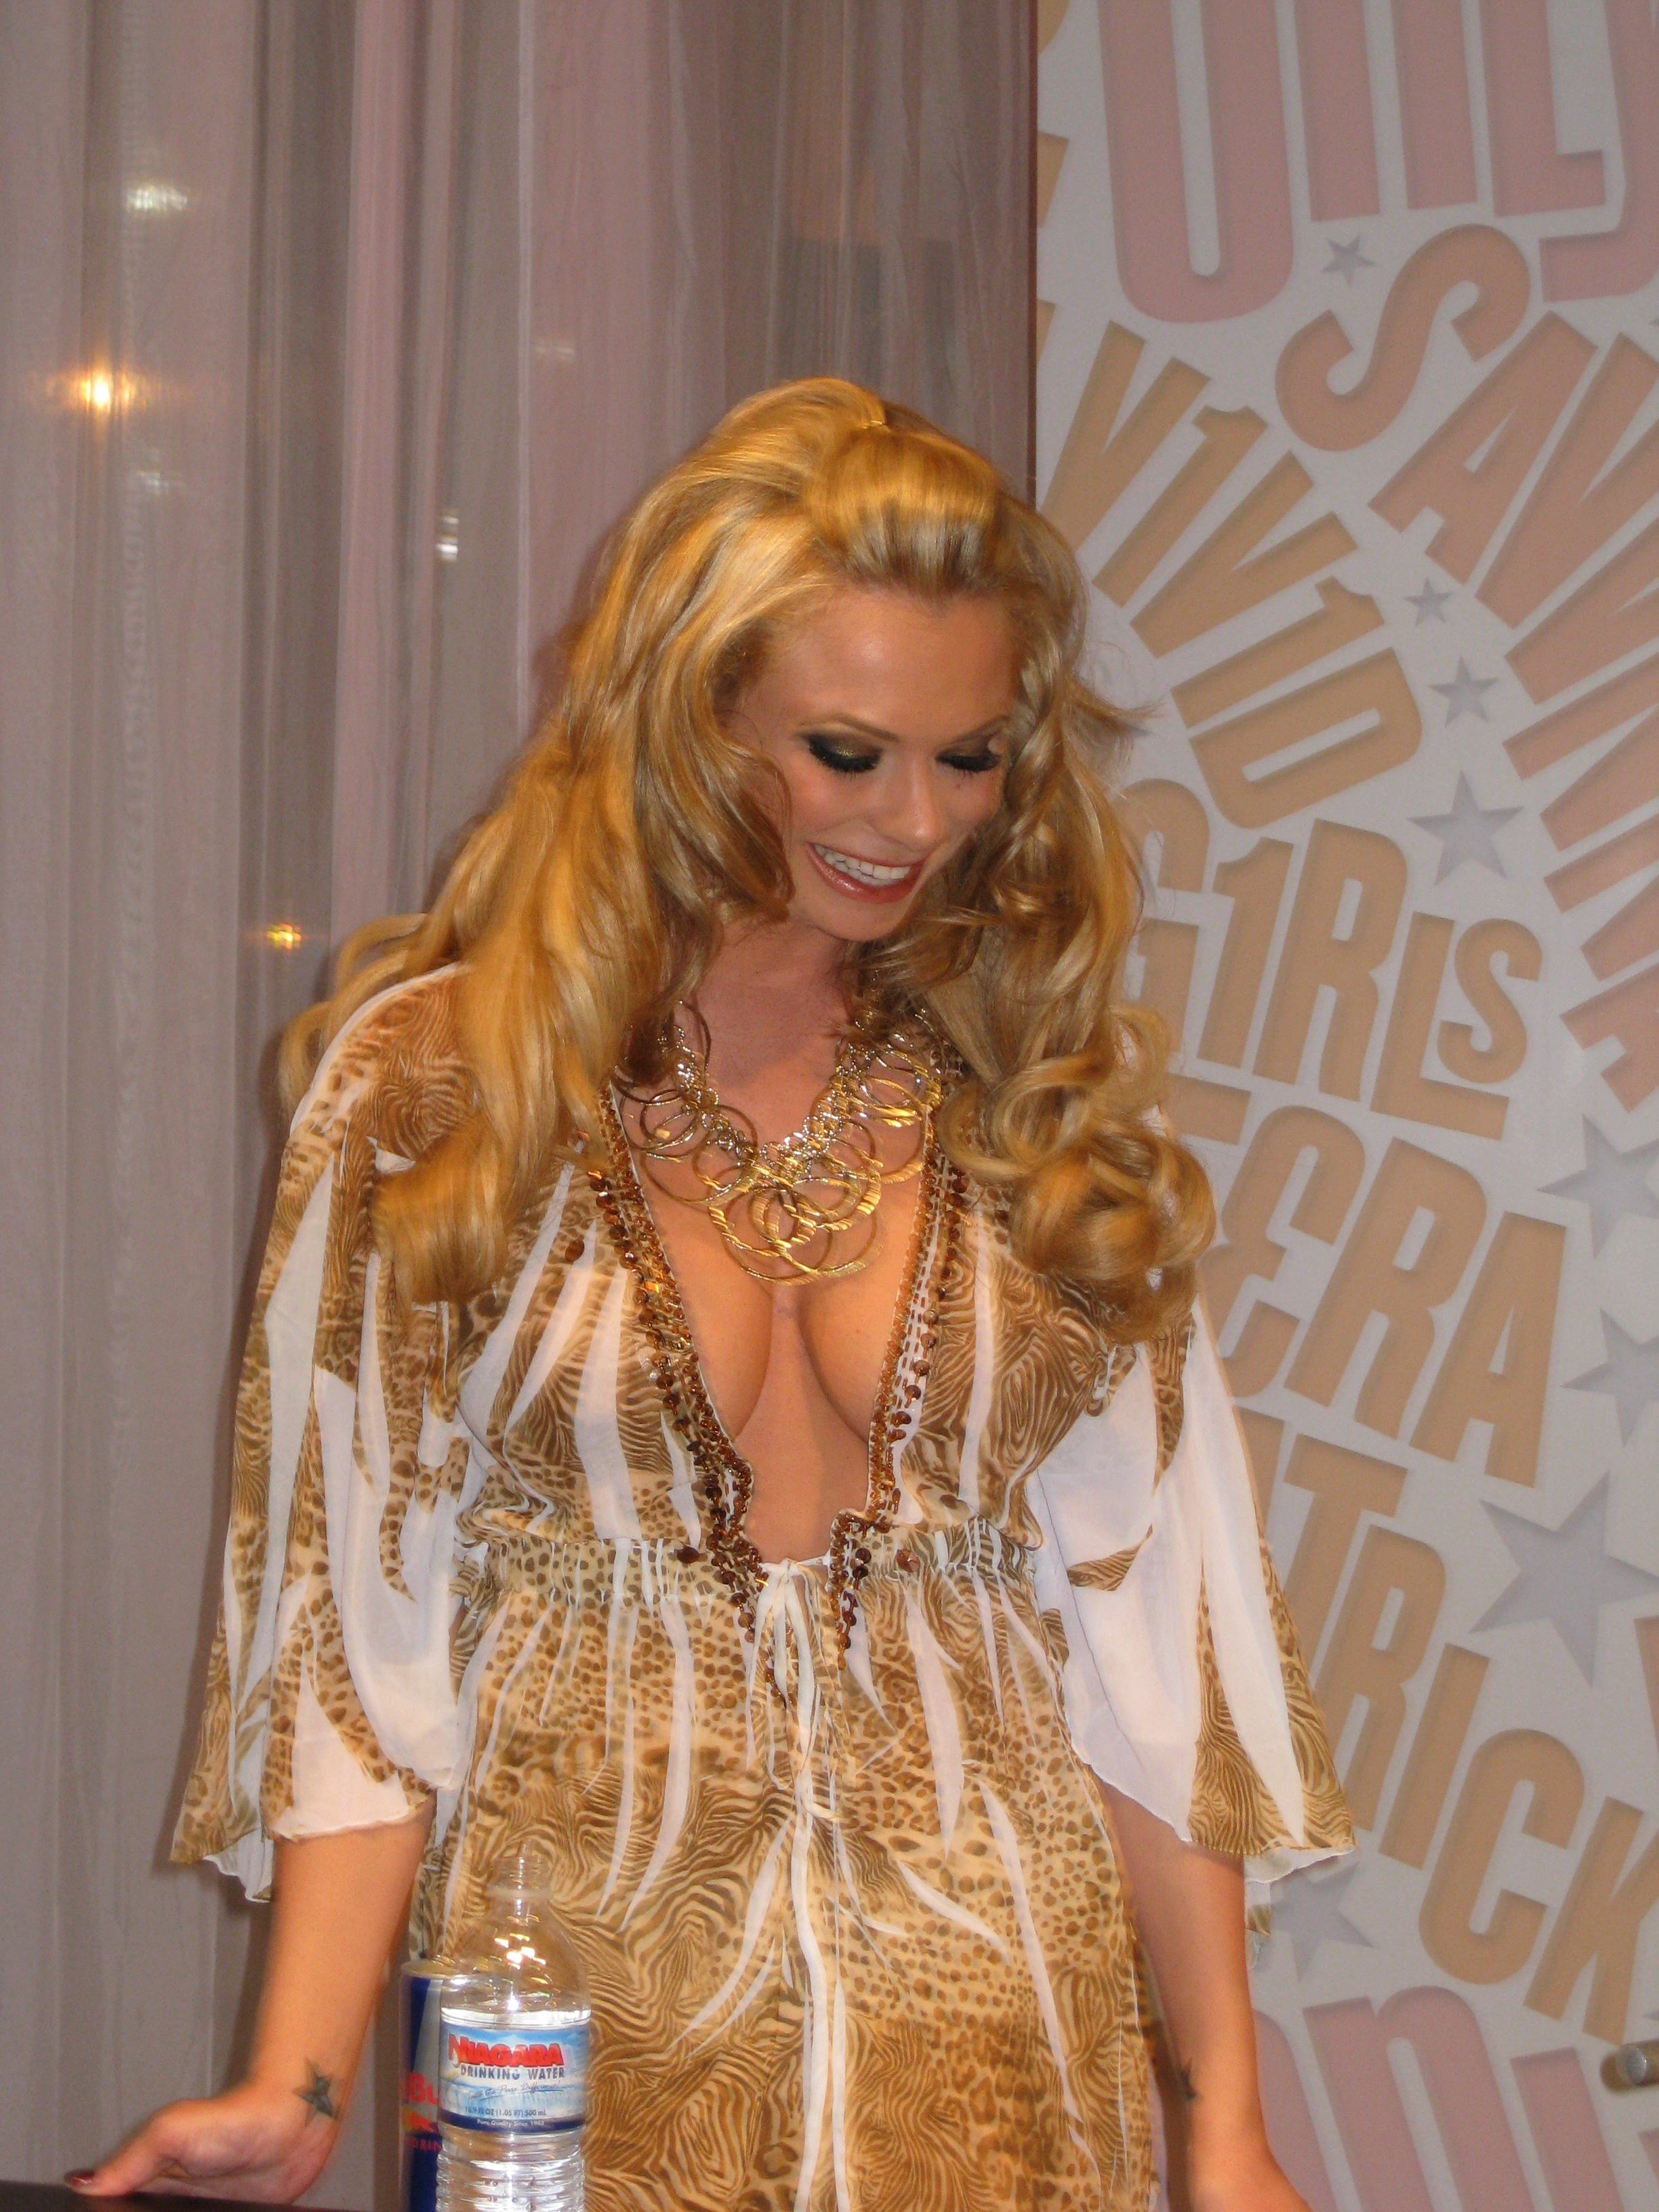 There briana banks consider